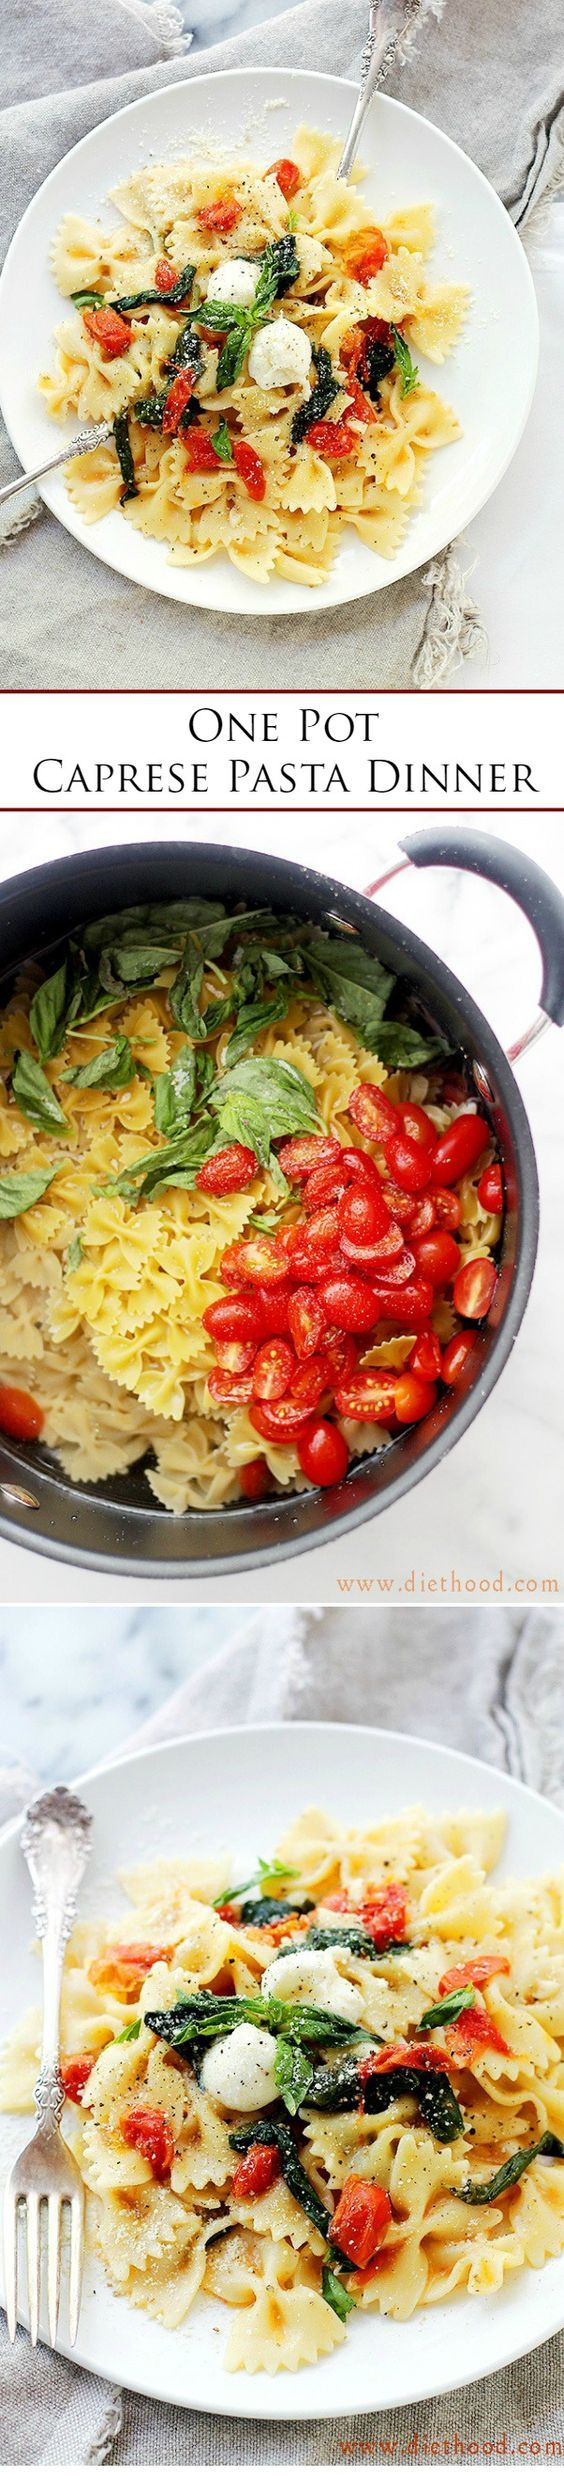 One-Pot Caprese Pasta Dinner Recipe plus 24 more of the most pinned one pot meals